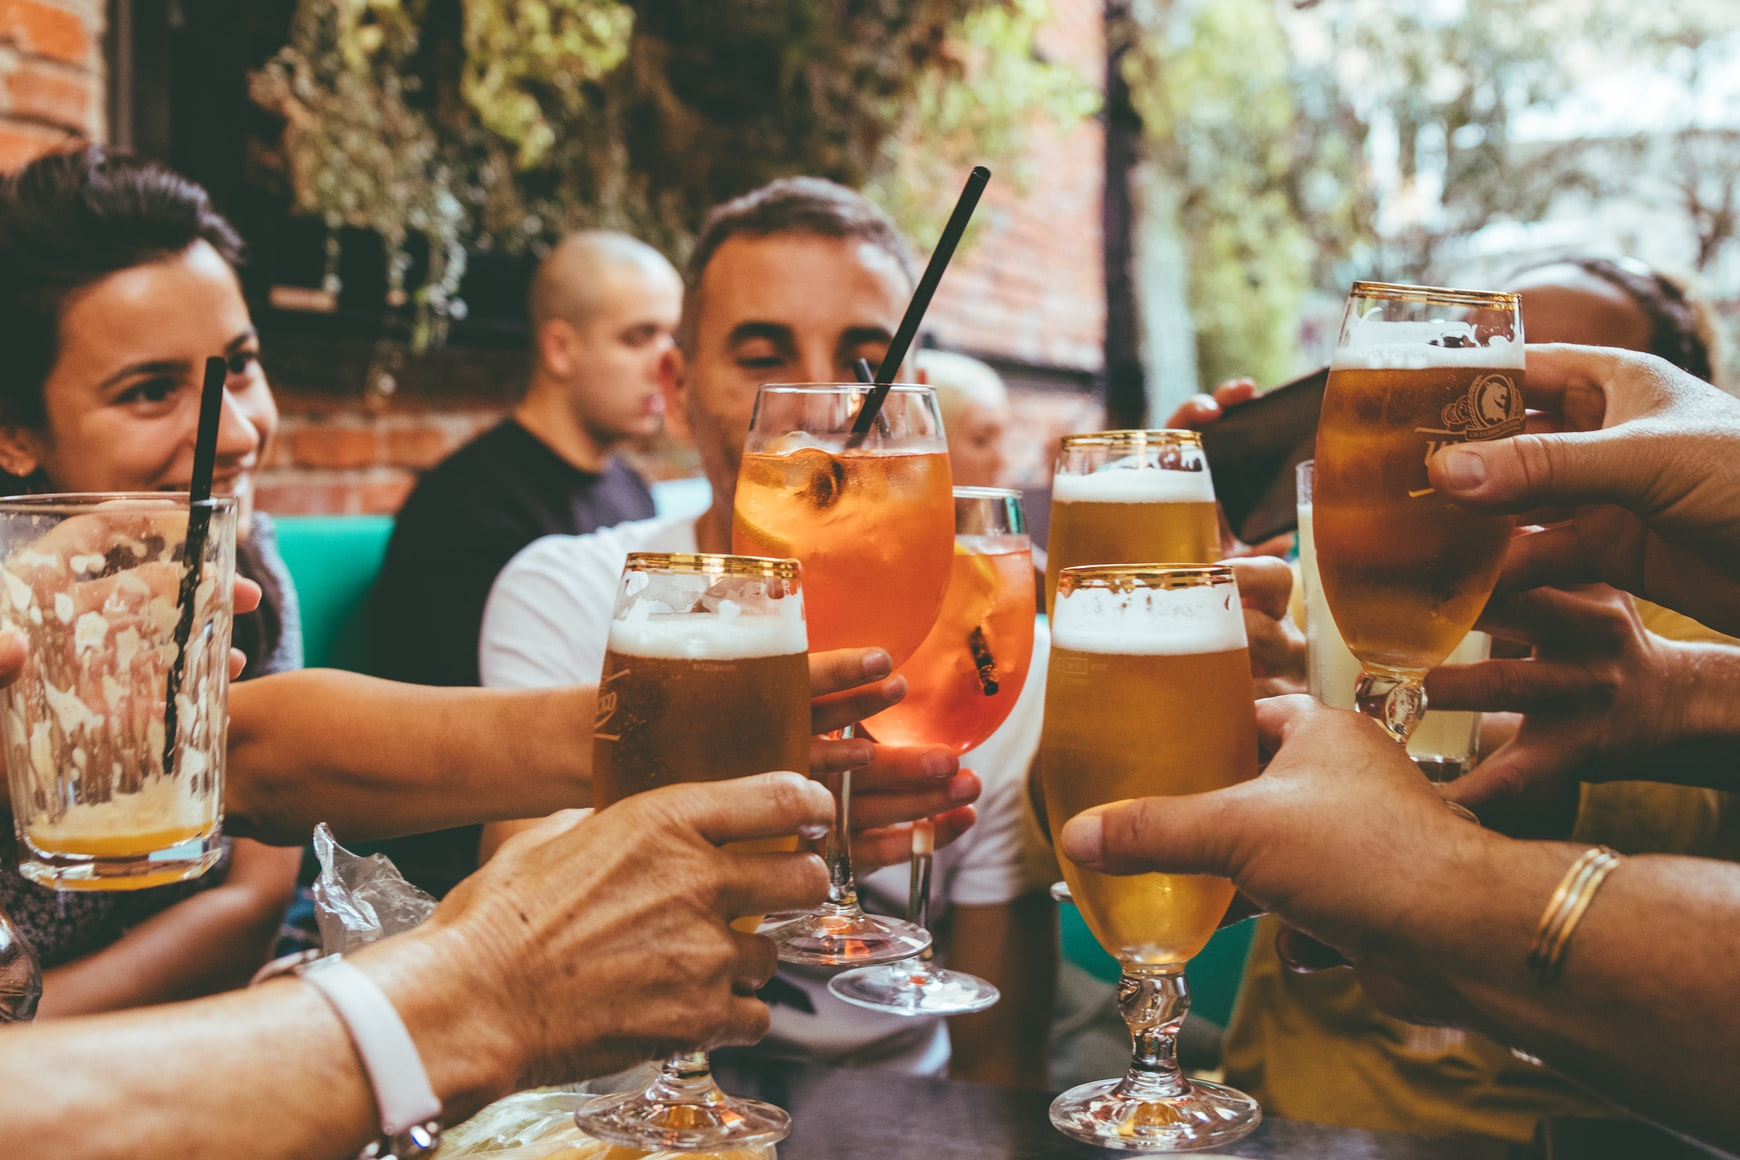 Alcohol has quickly become one of America's most commonly abused substances, with severe long-term mental and physical health issues rising due to the poisonous toxins.